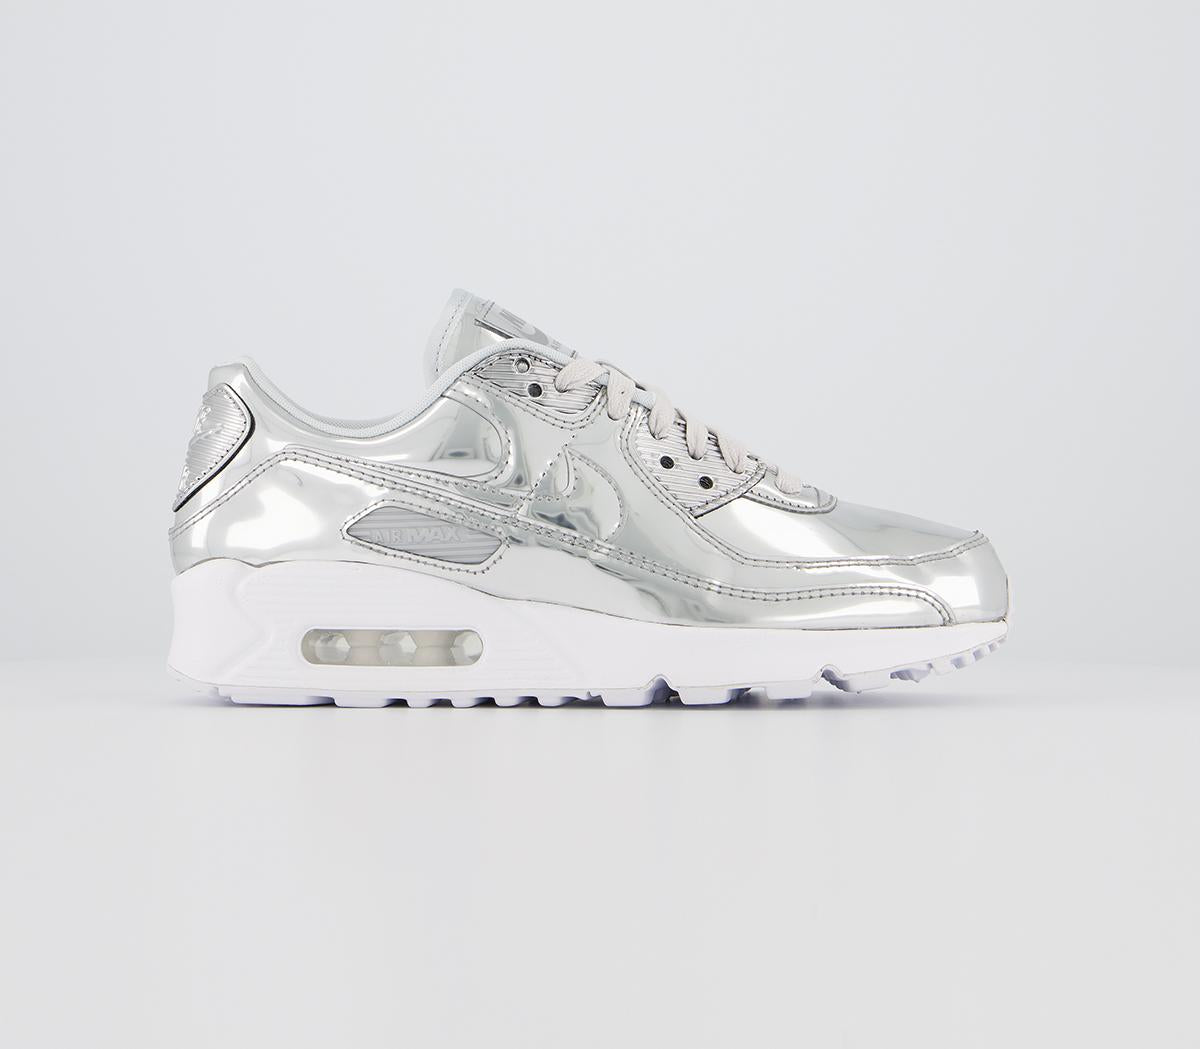 Womens Nike Air Max 90 Liquid Metal Chrome Trainers